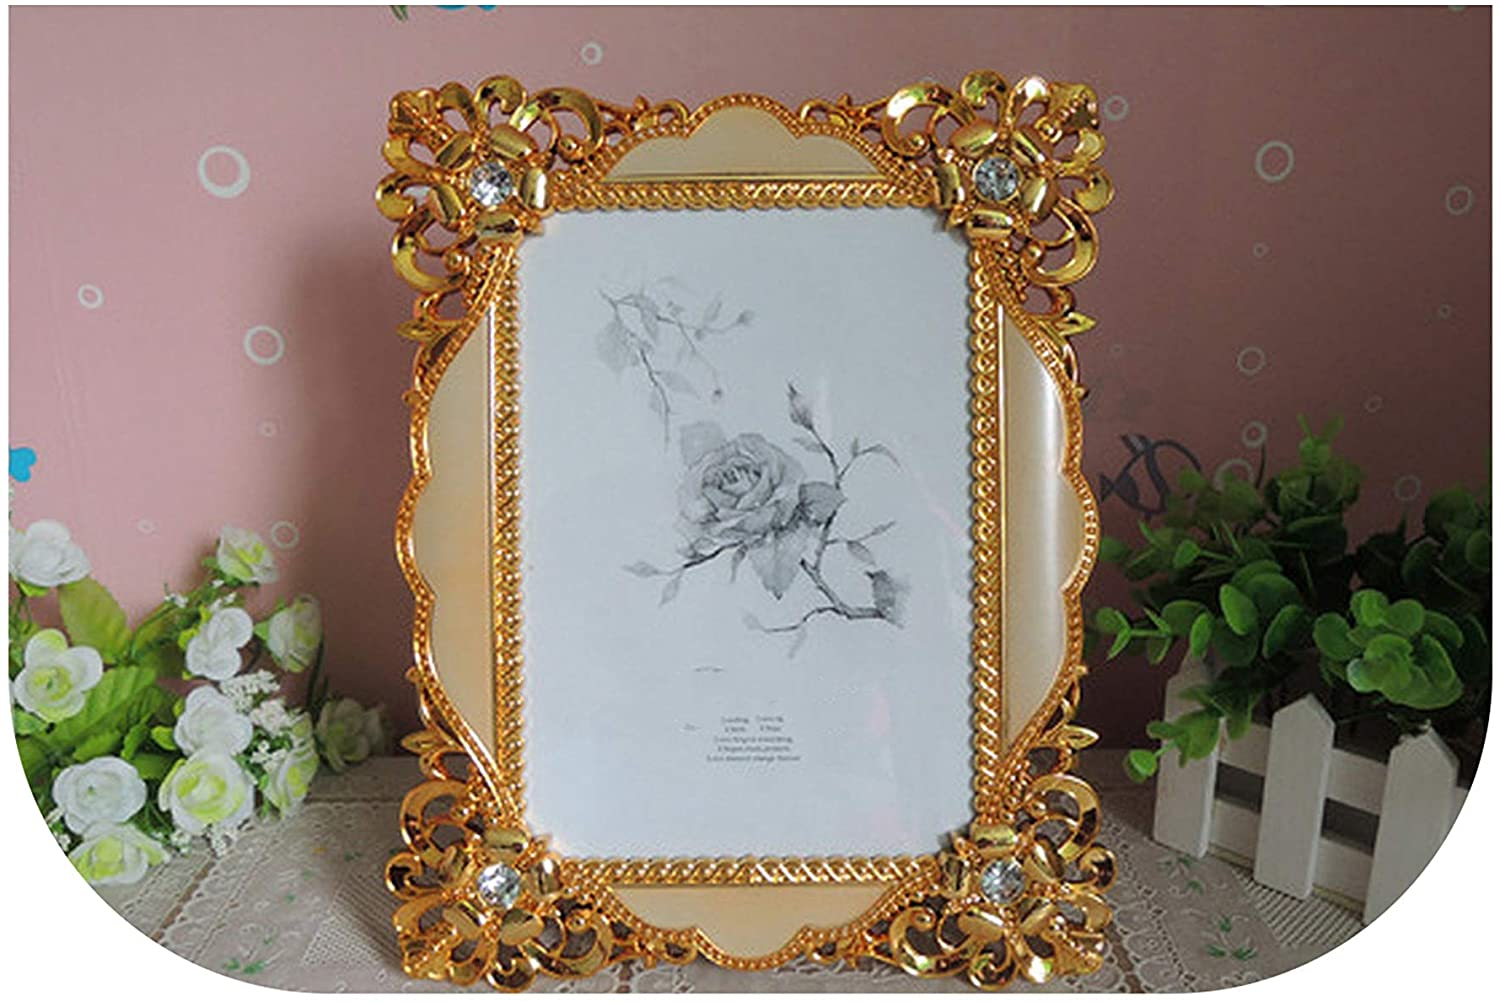 mamamoo Vintage Luxury Baroque Style Gold Silver Desktop Frame Photo Frame Gift for Friend Family,02